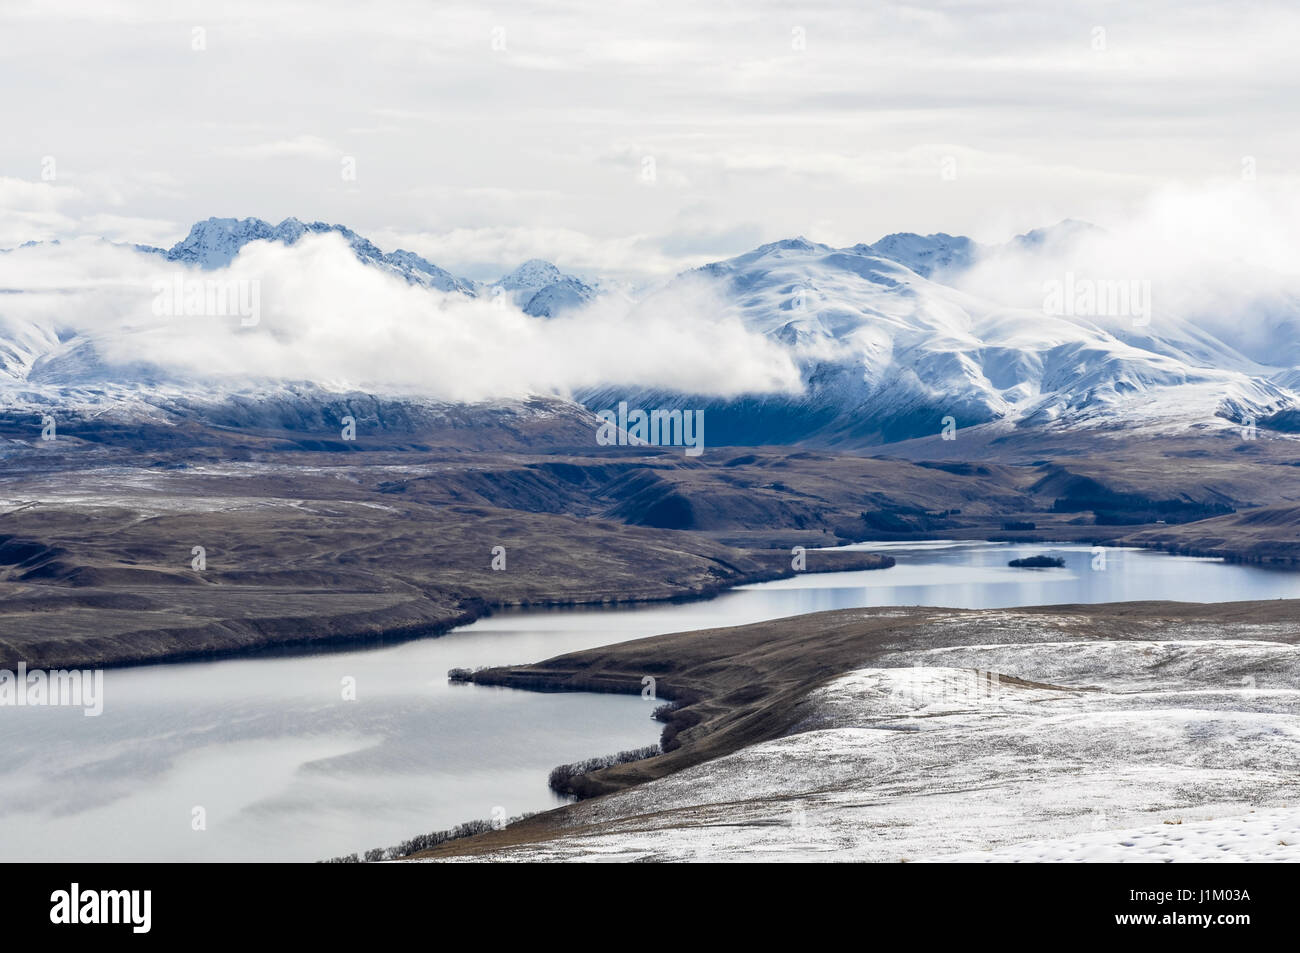 View of Lake Tekapo from above, Southern Island of New Zealand - Stock Image